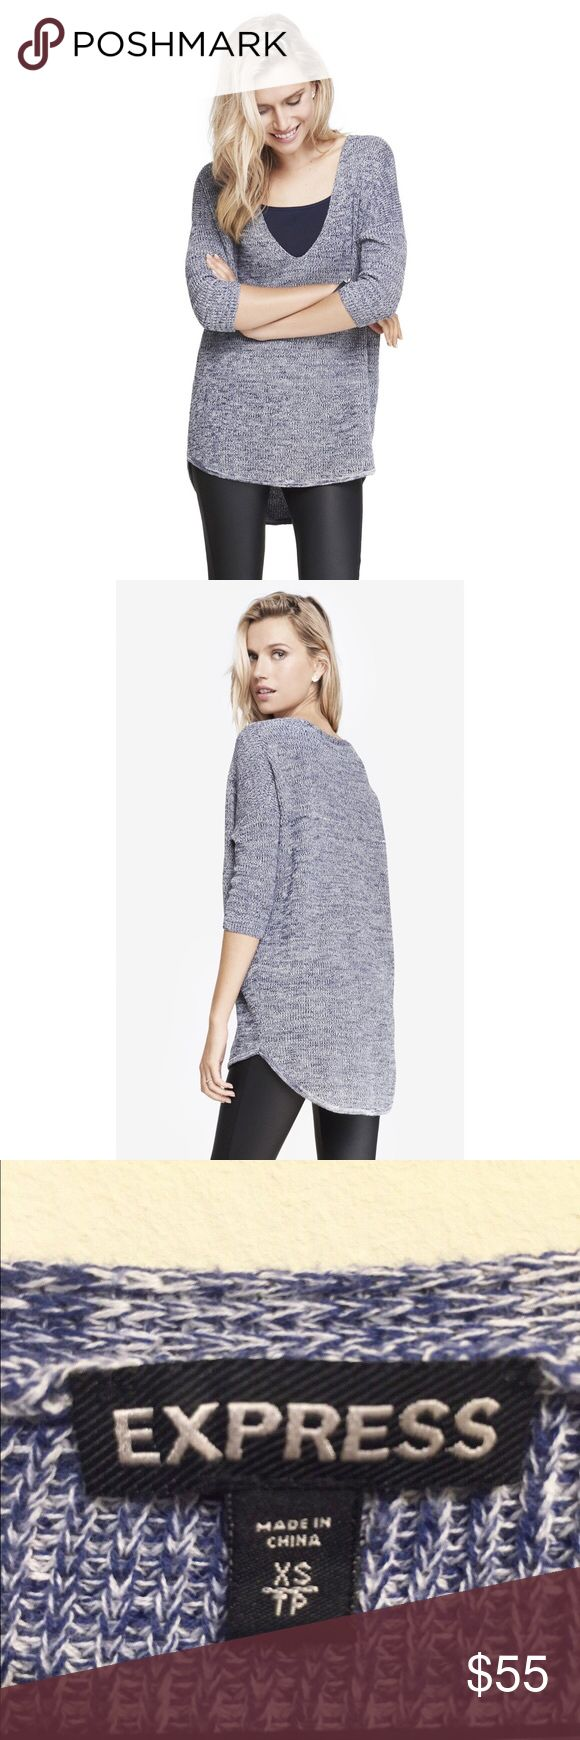 "✨Women's Blue Marled London Sweater✨ ✨""London sweater. Perfect timing, as this hi-lo look makes leggings totally user friendly, offering long backside coverage and soft style. Three quarter sleeves and dropped shoulders add drama to the cozy look. Cheers to easy! Rounded V neckline. Dropped shoulders with three quarter length sleeves. Vertical ribbed shaker stitch. Slimming stitch detail at waist. Hi-lo ribbed hem, back falls to just above knee. Cotton; Machine wash. Imported.""✨ Express…"